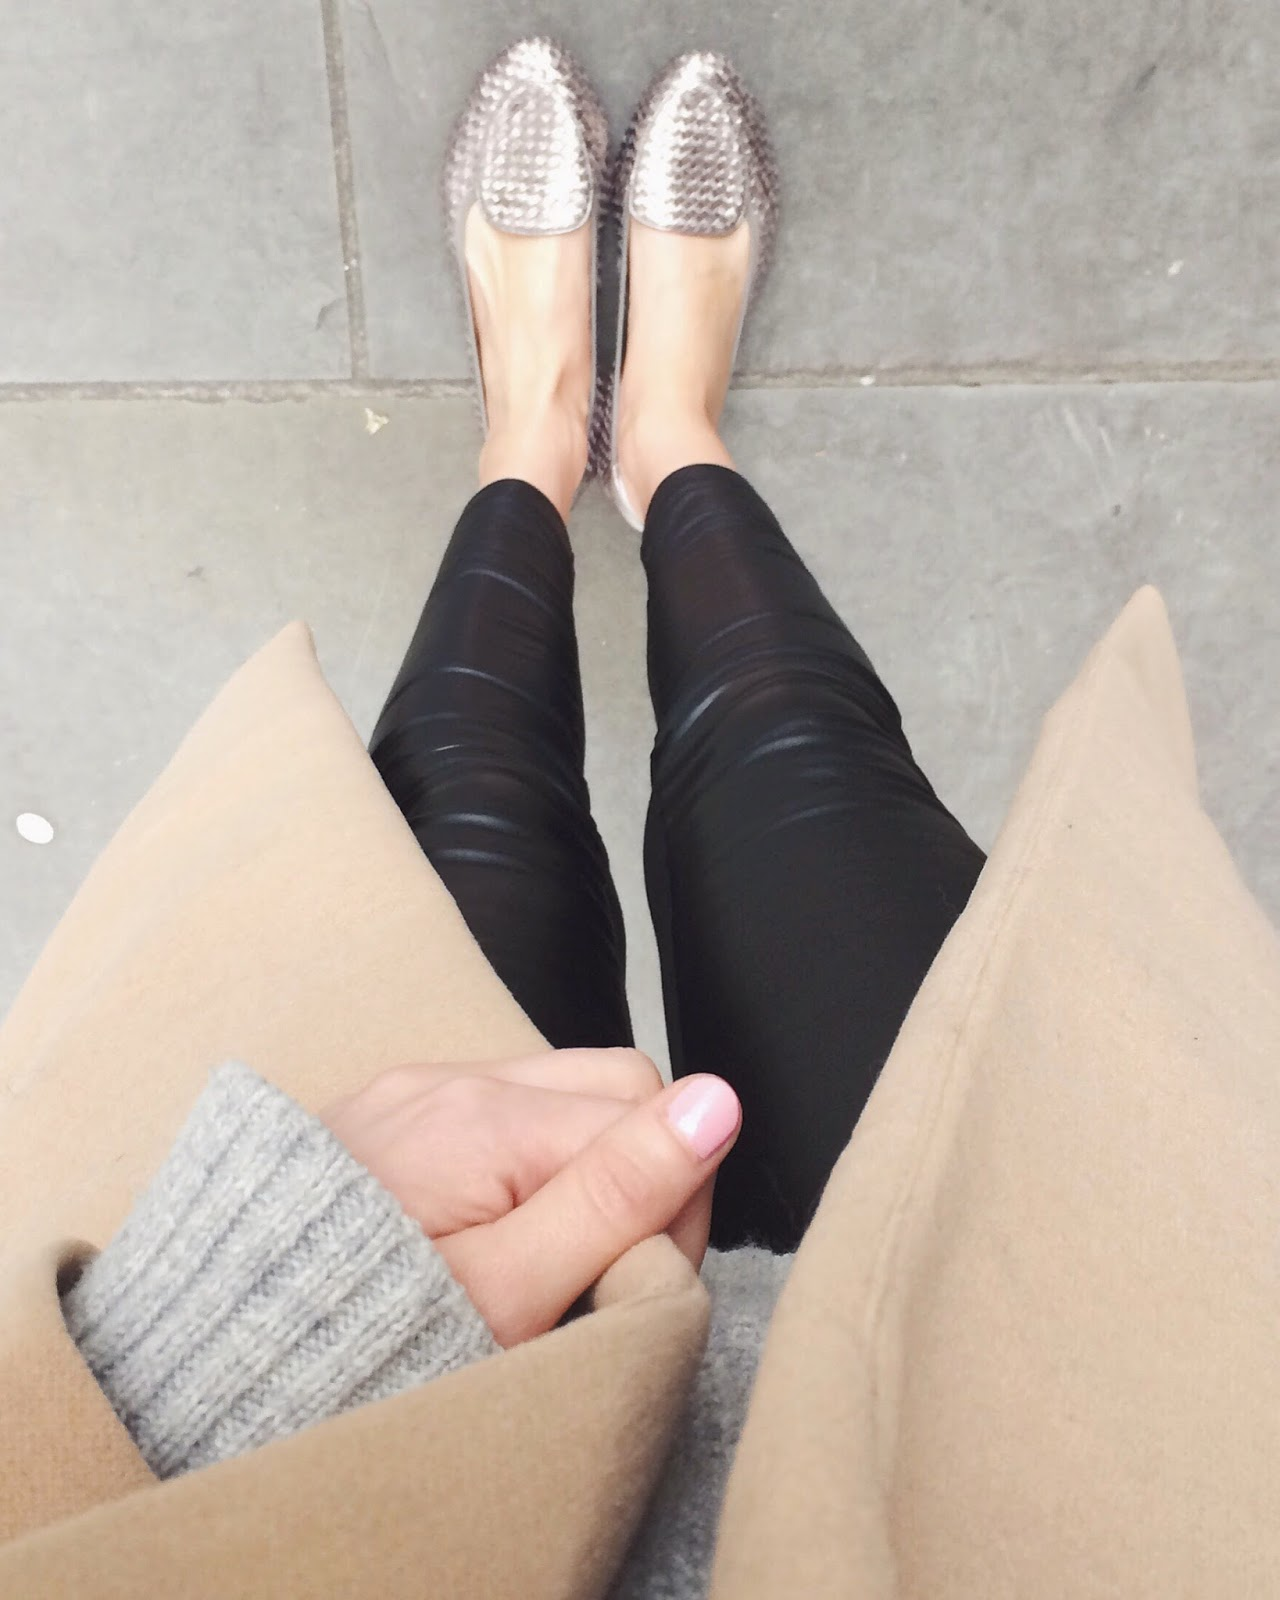 pink nails, nude nails, fwis, from where i stand, pointed loafers, pointed ballet flats, metallic flats, metallic loafers, leather pants, leather leggings, camel coat, wardrobe staple